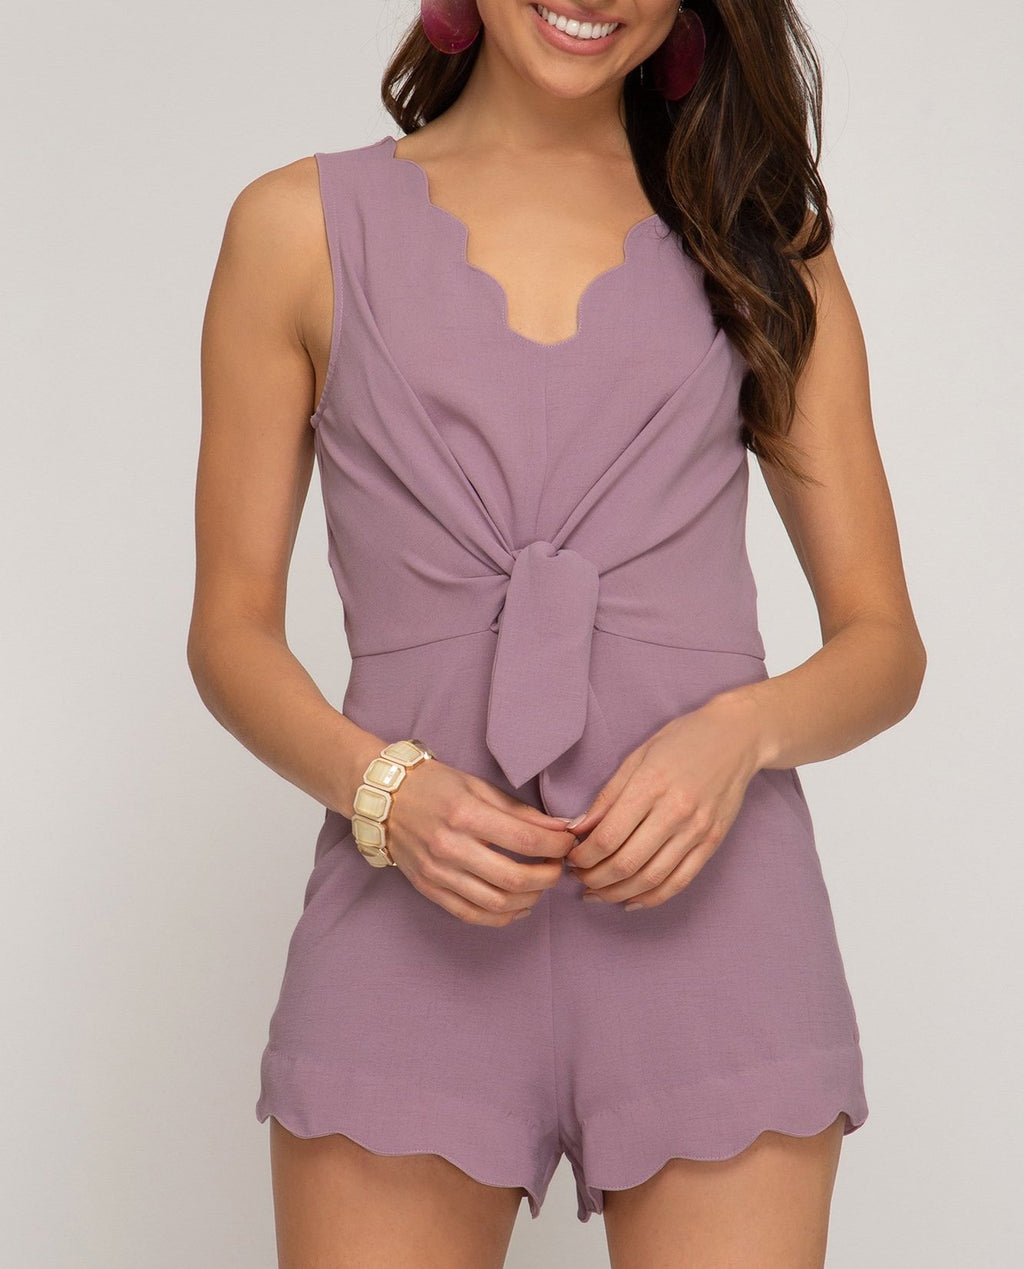 Spring Scallops Romper (+colors)